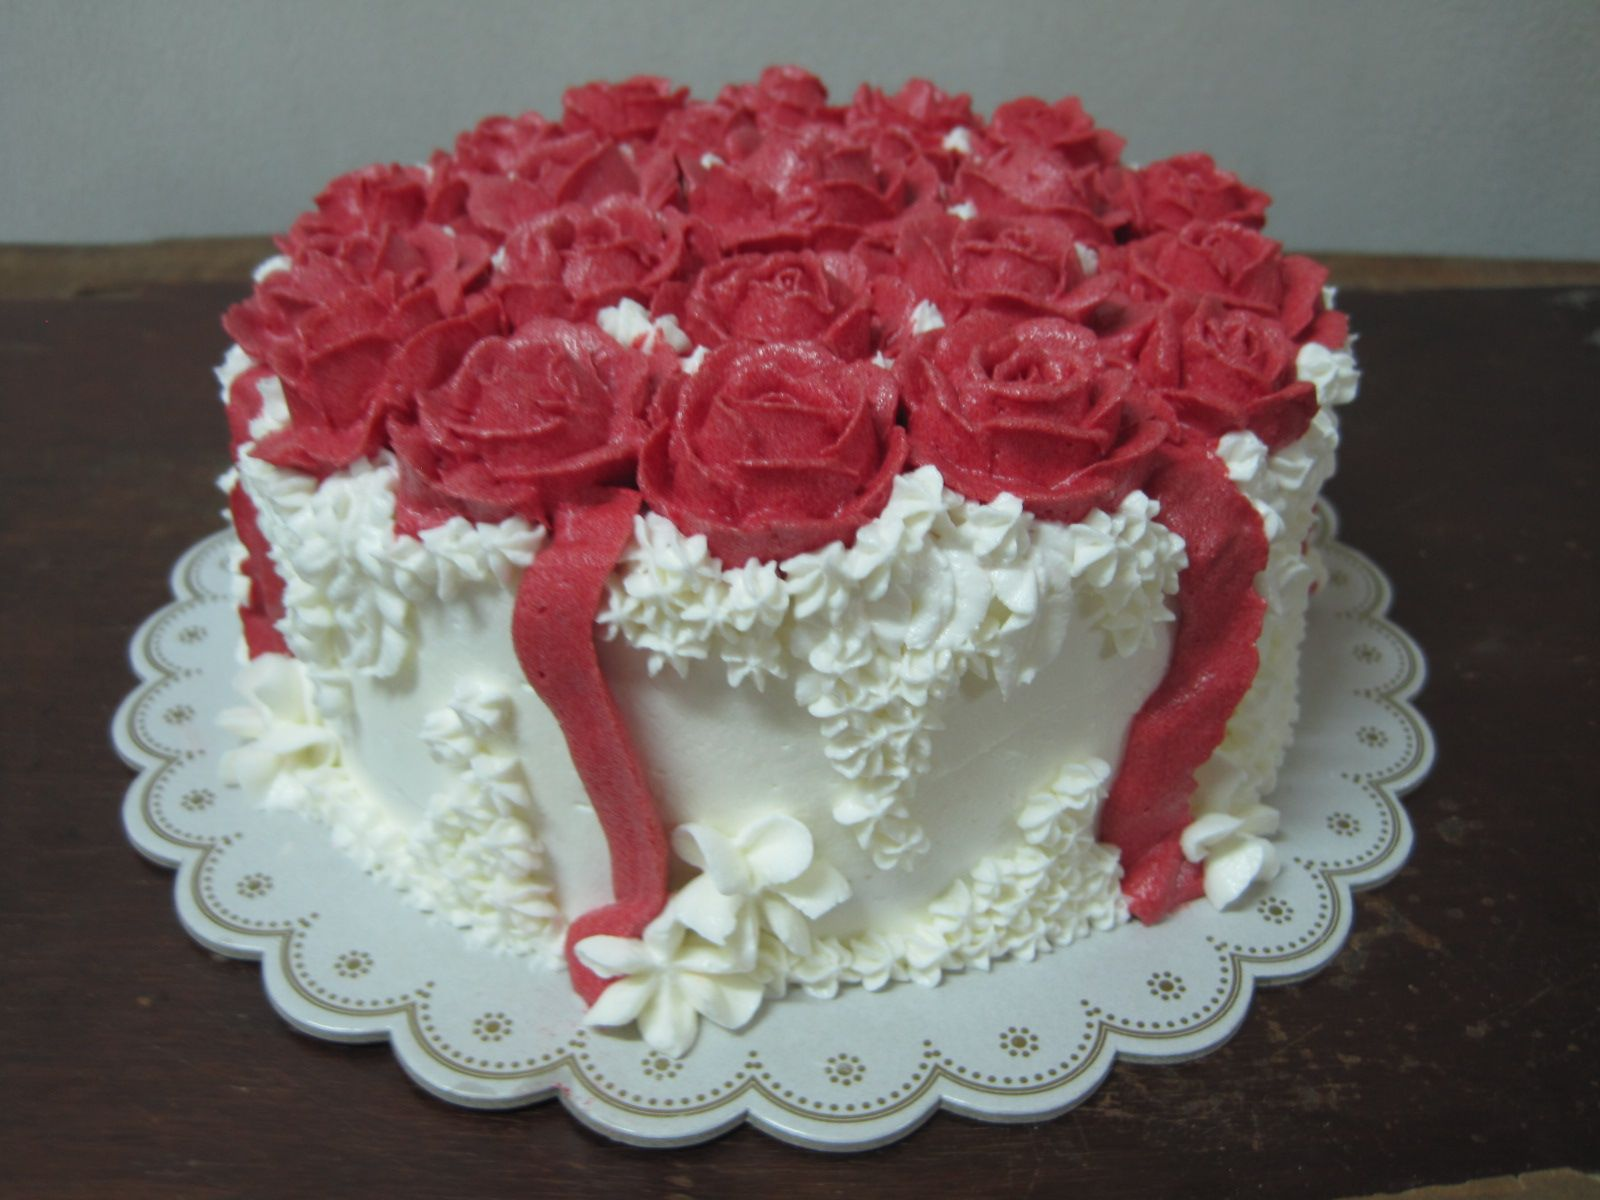 Best Wide_happy birthday cake with red roses | Hd ...